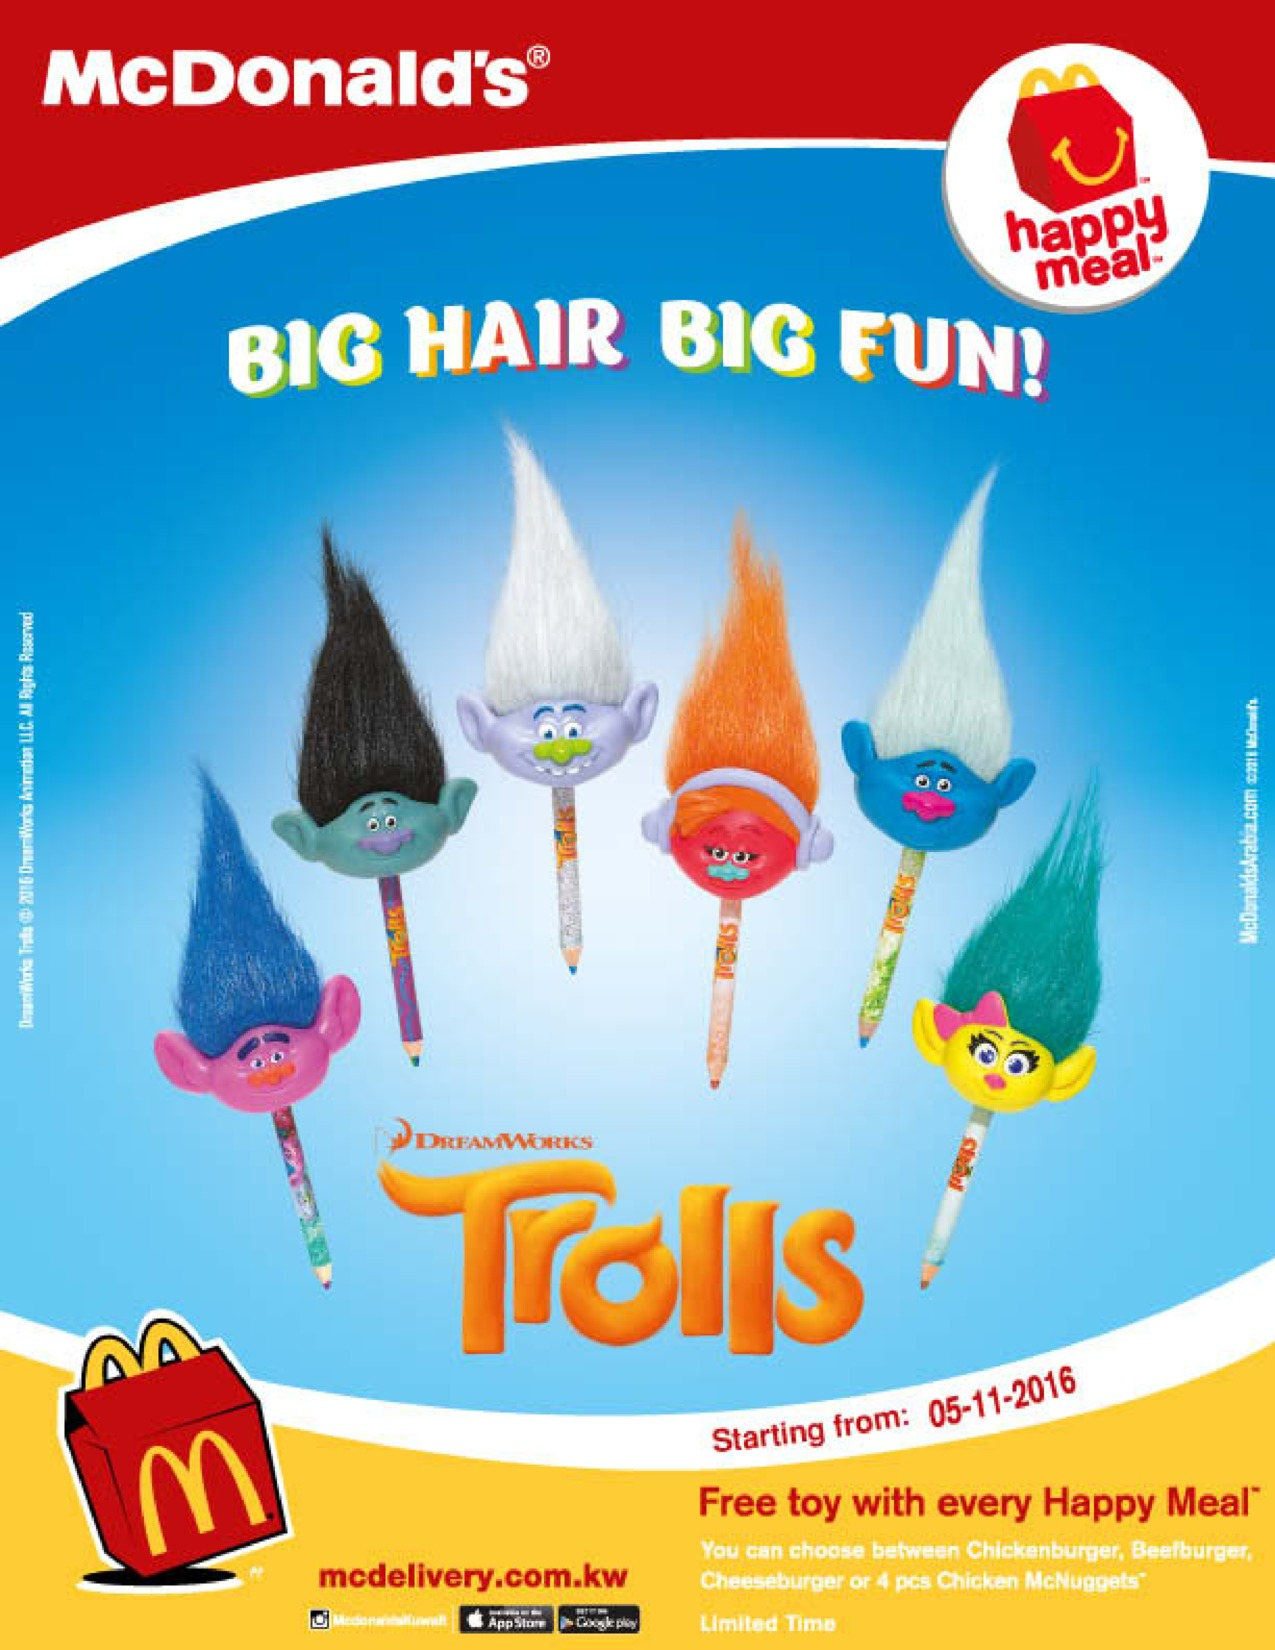 happy-meal-offer---big-hair-big-fun-kuwait